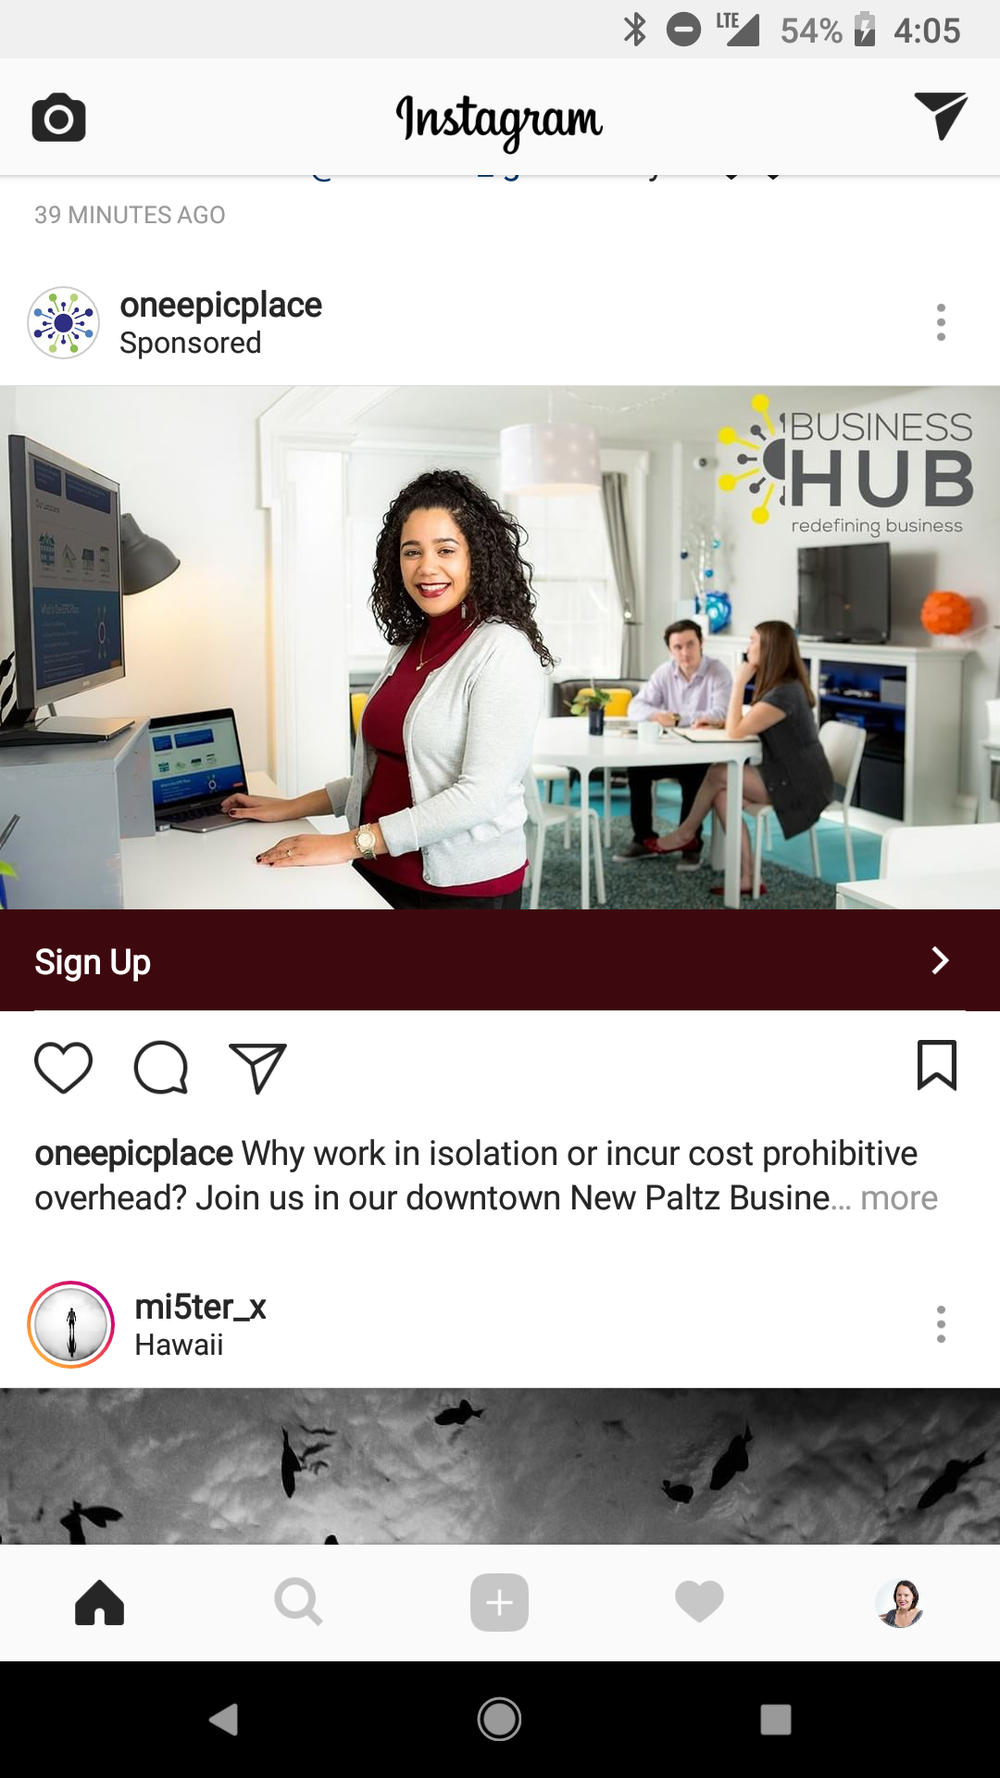 One Epic Place, lifestyle/advertising shoot for a co-working office, using a photo from our shoot for an ad campaign on Instagram (and Facebook).